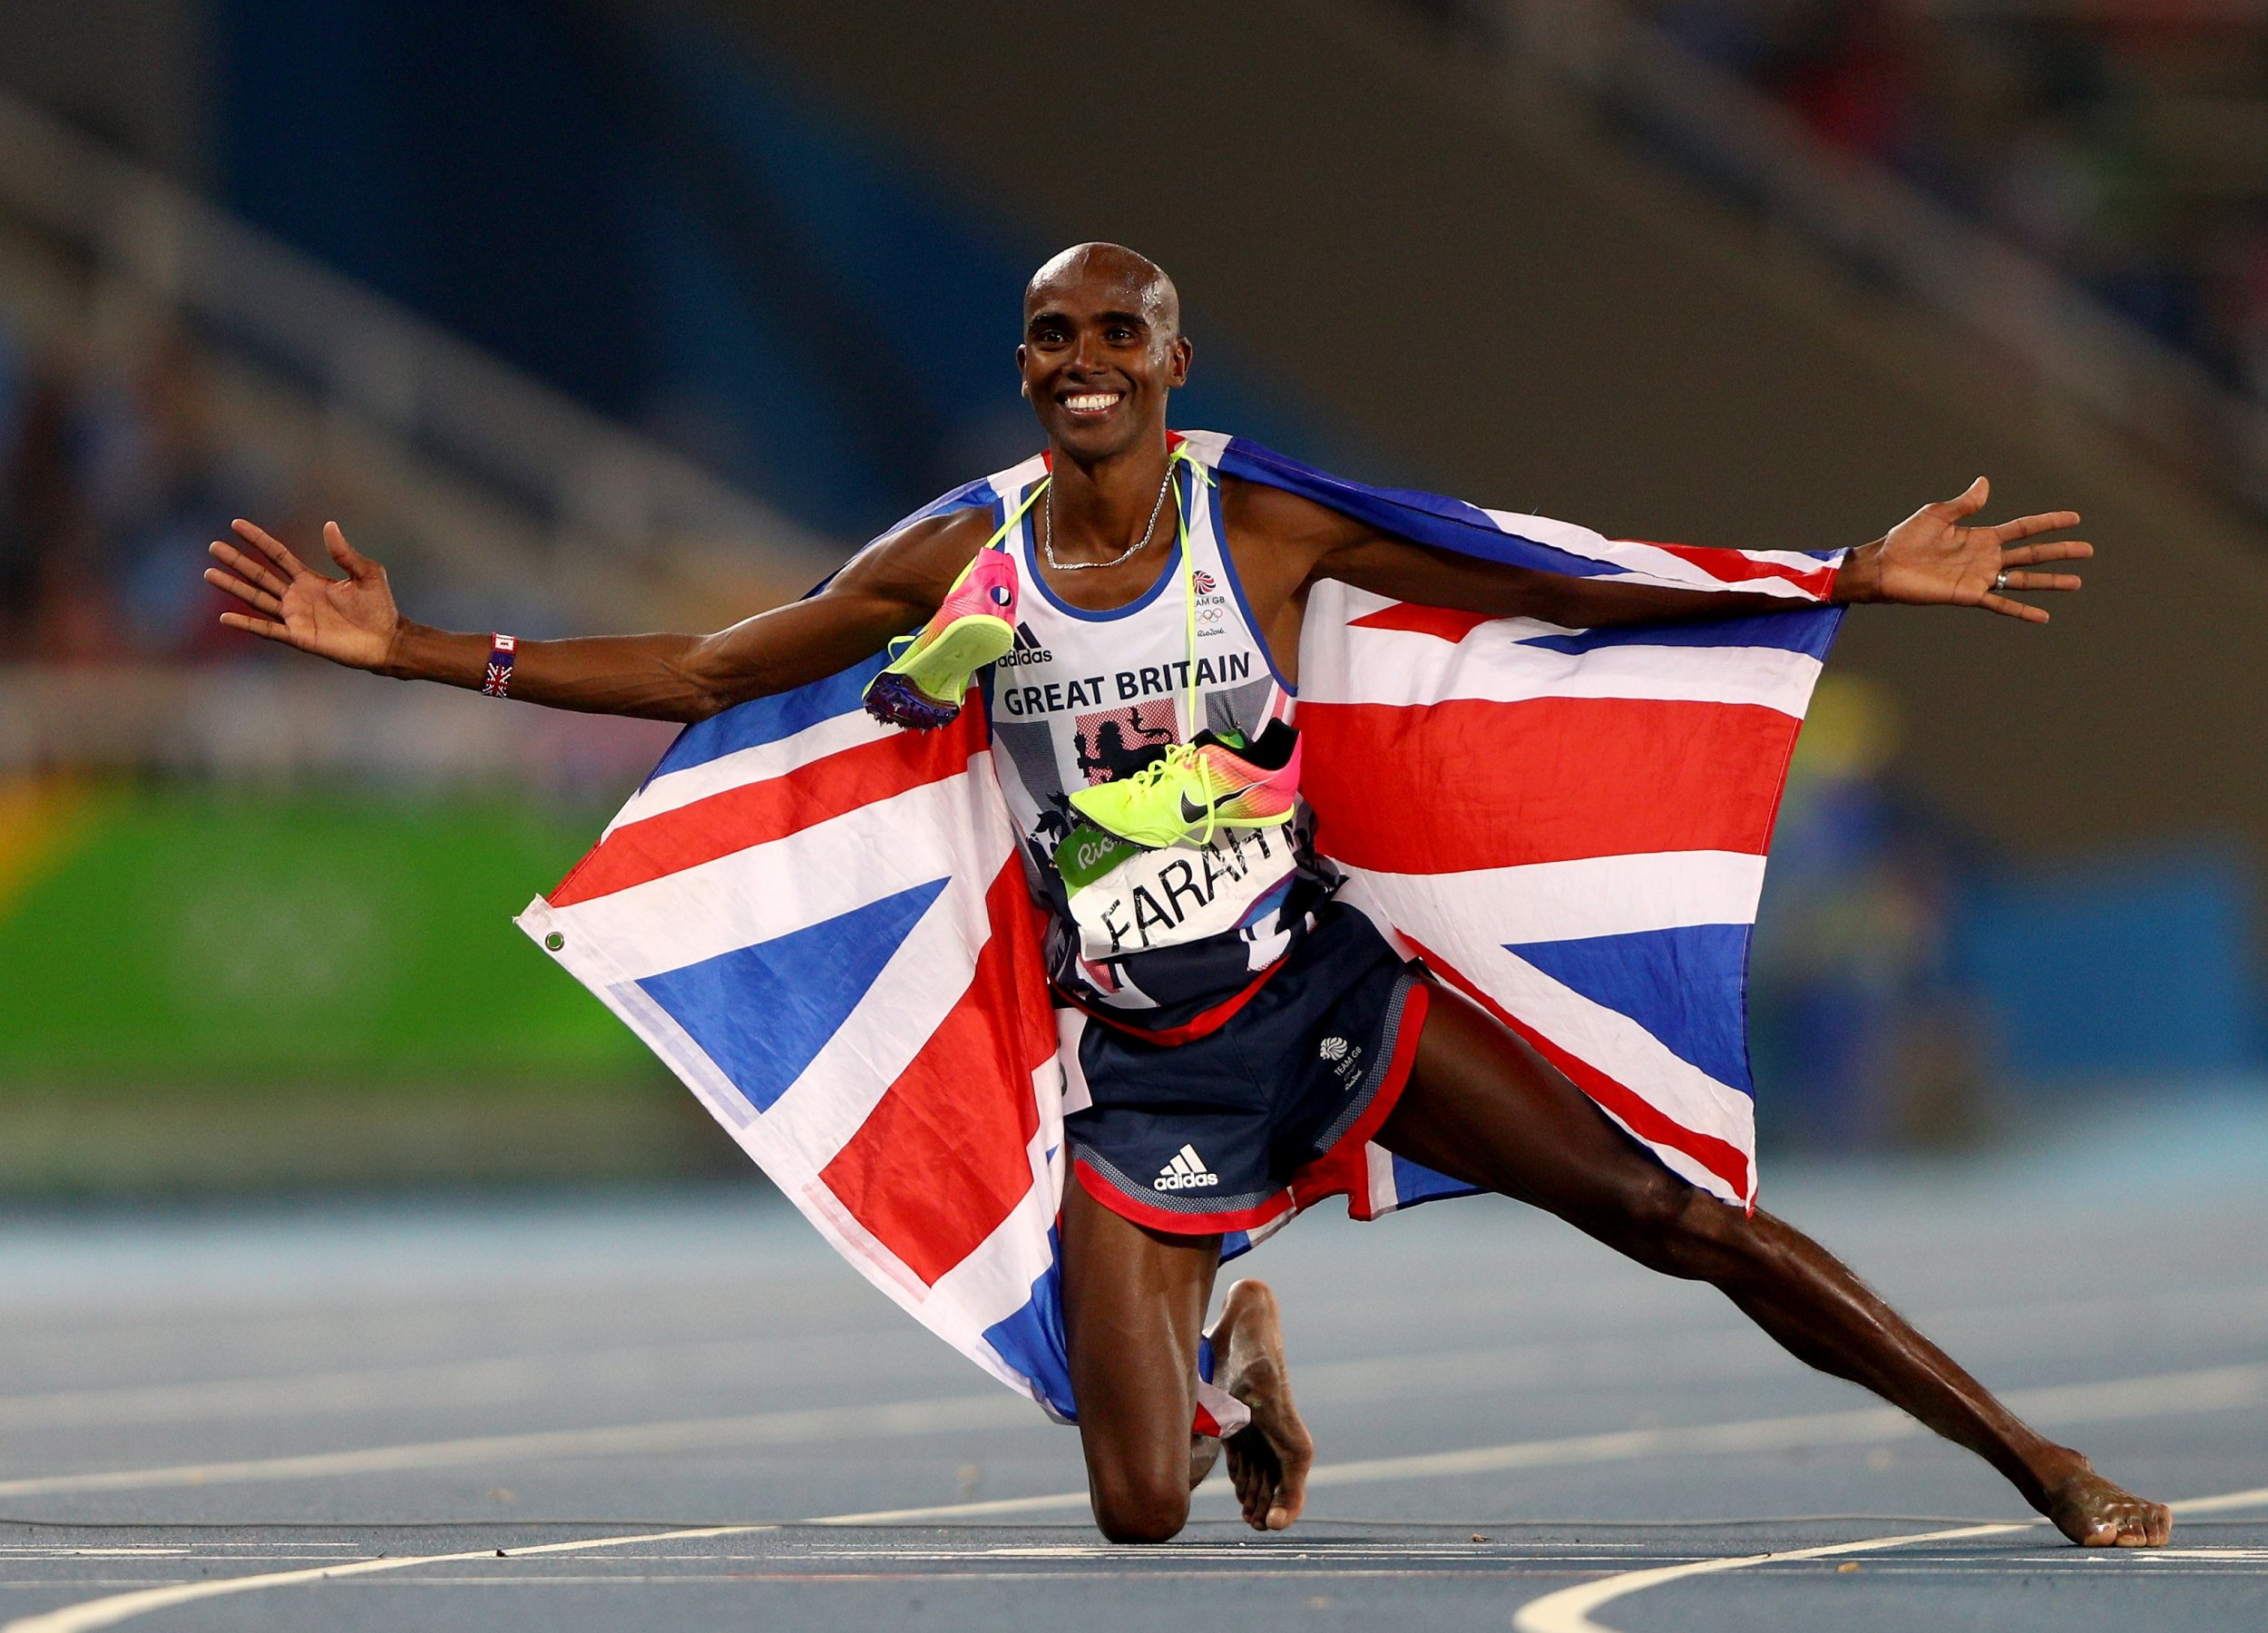 Mo Farah Tells Newsweek: Donald Trump Could Force Me Back to Britain